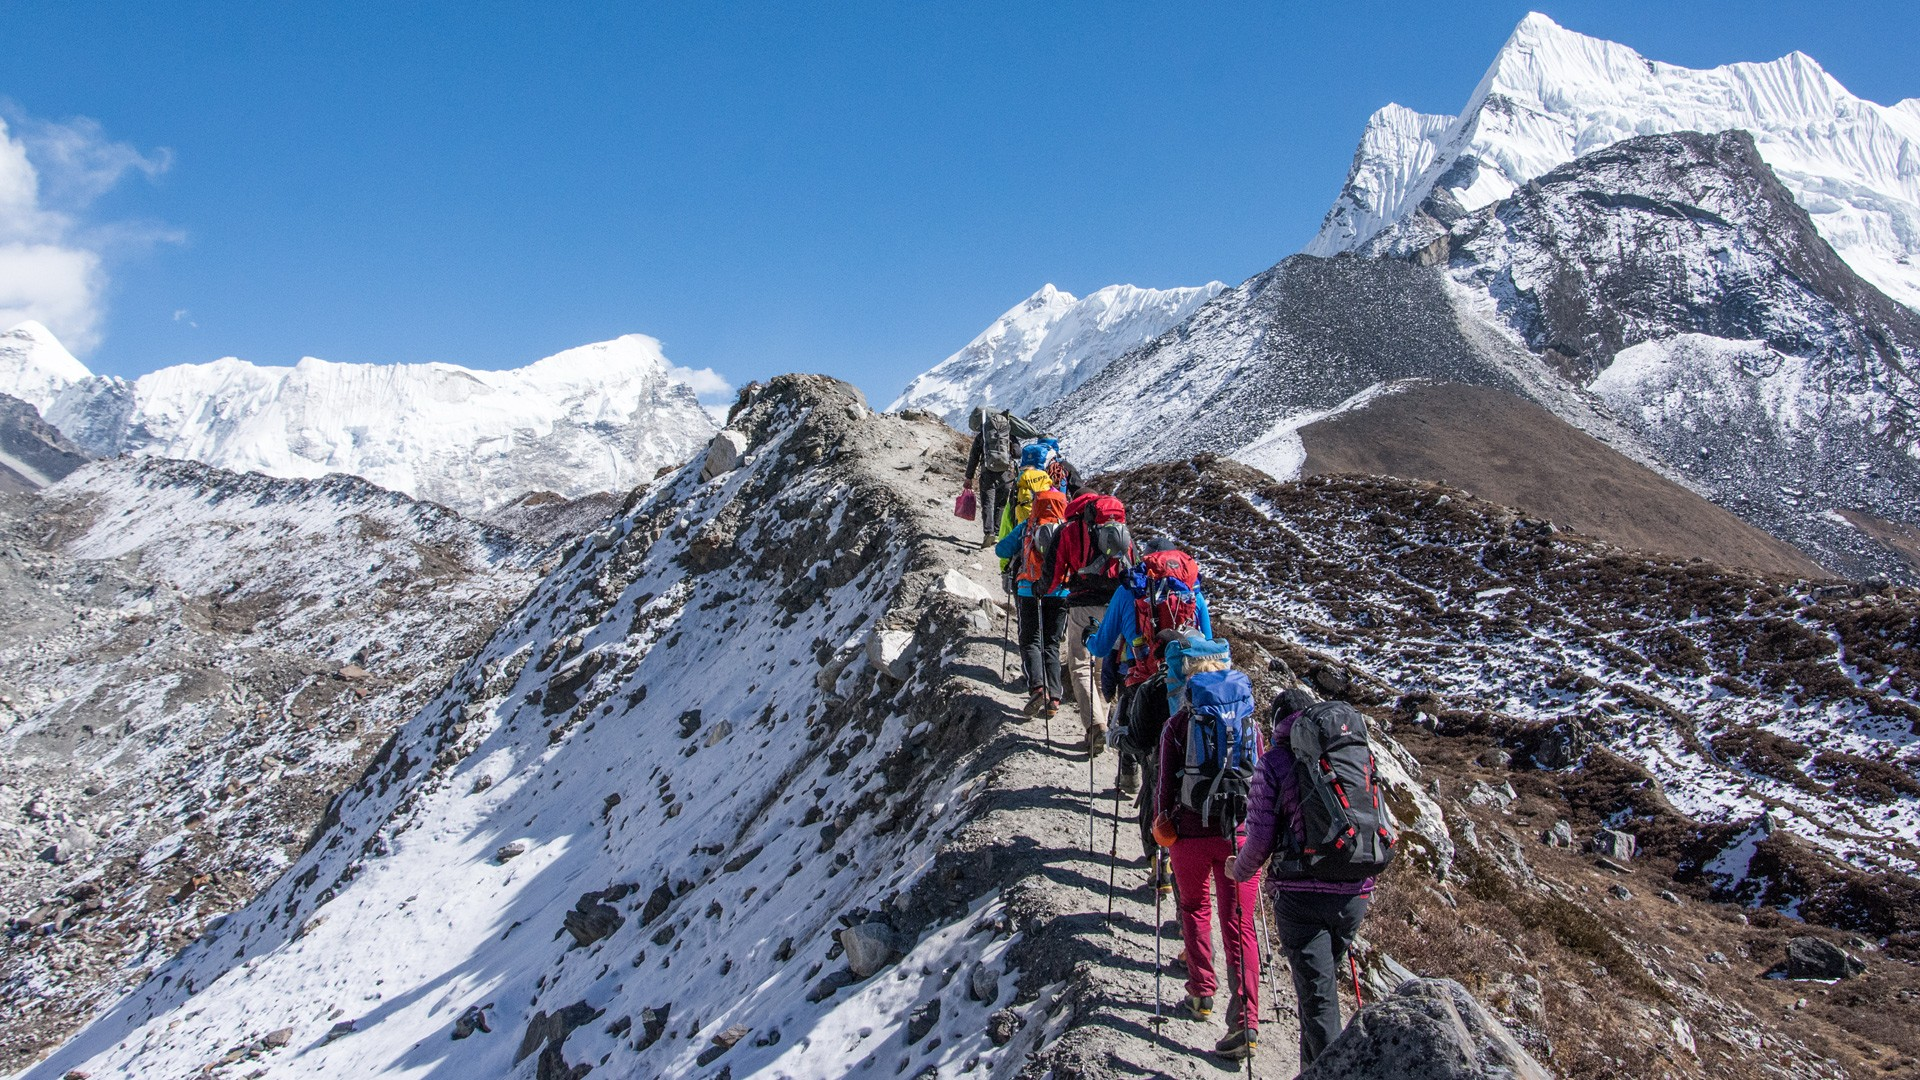 About expeditions in Nepal